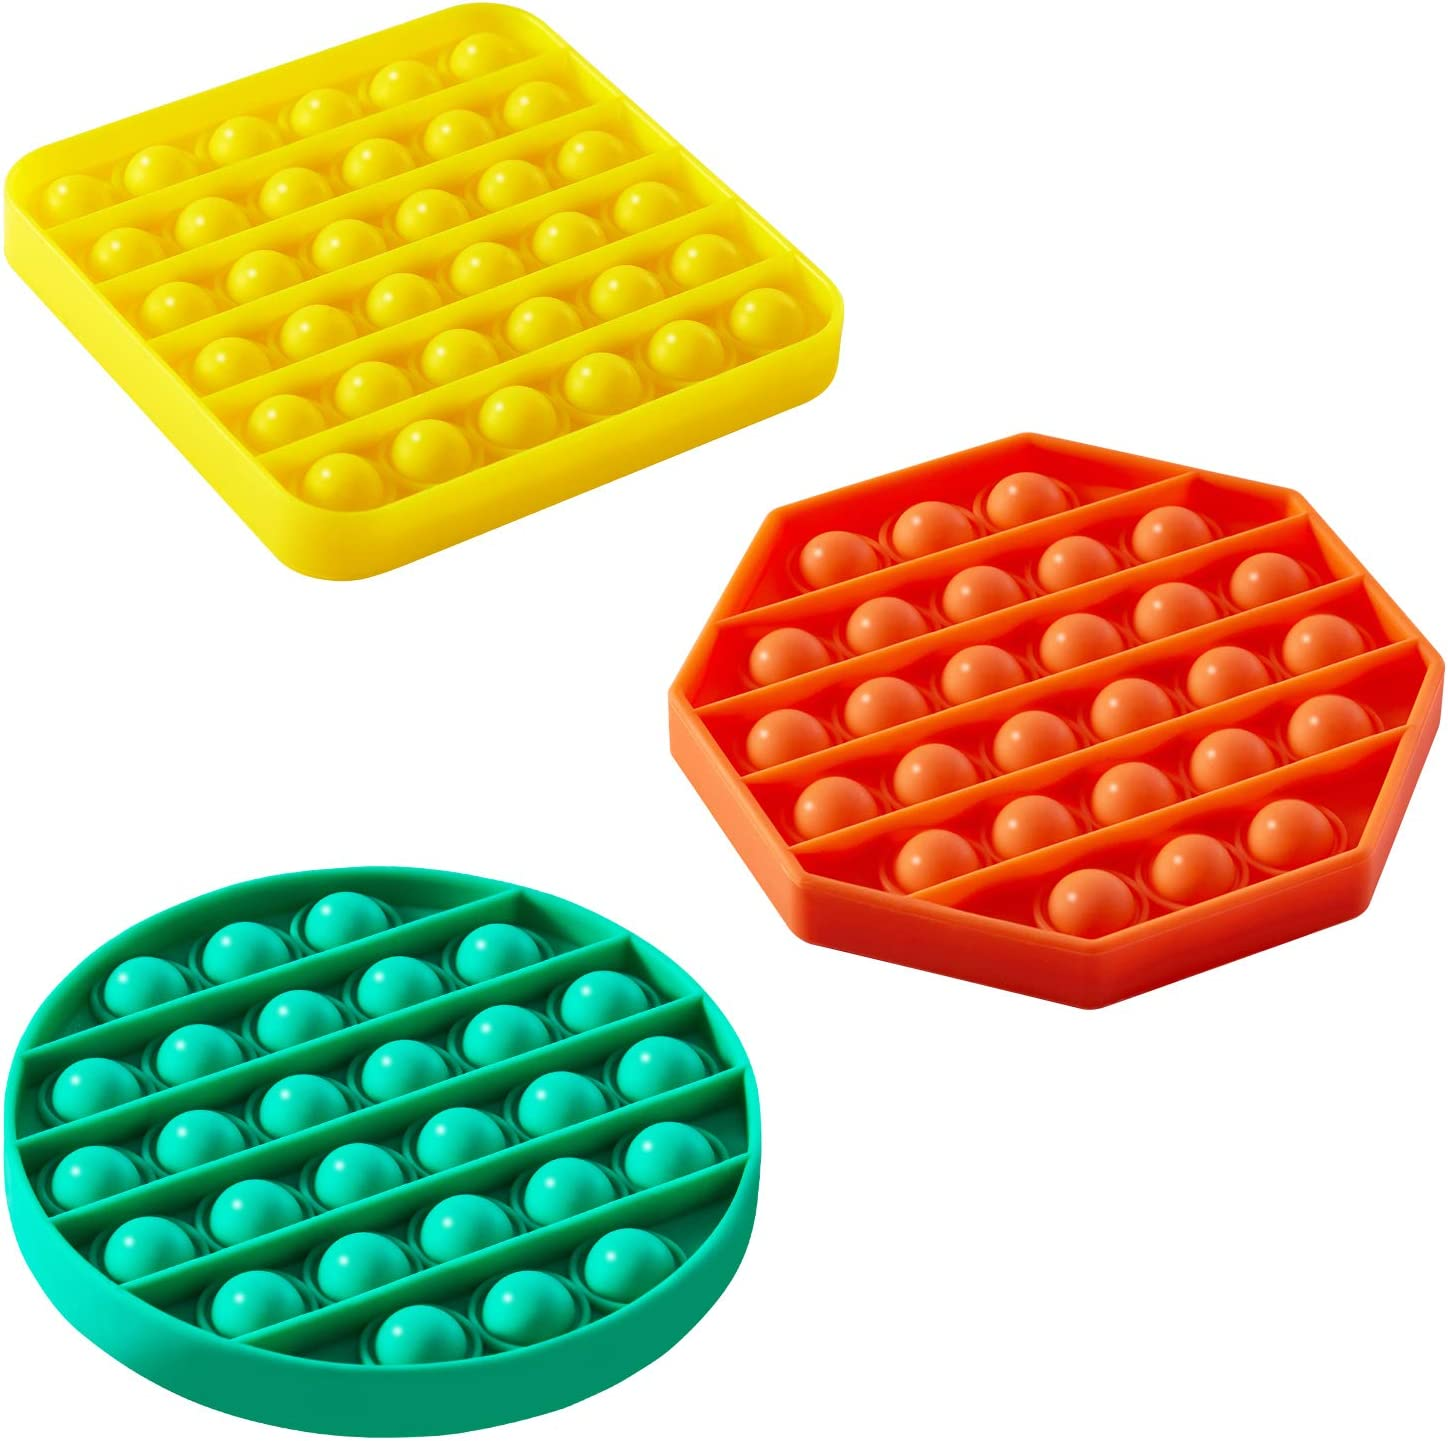 Kids and Friends Yellow+Green+Orange Silicone Stress Reliever Toy 3 Pack Push Pop Bubble Fidget Sensory Toy Squeeze Sensory Toy for Adults Autism Special Needs Stress Reliever Toy